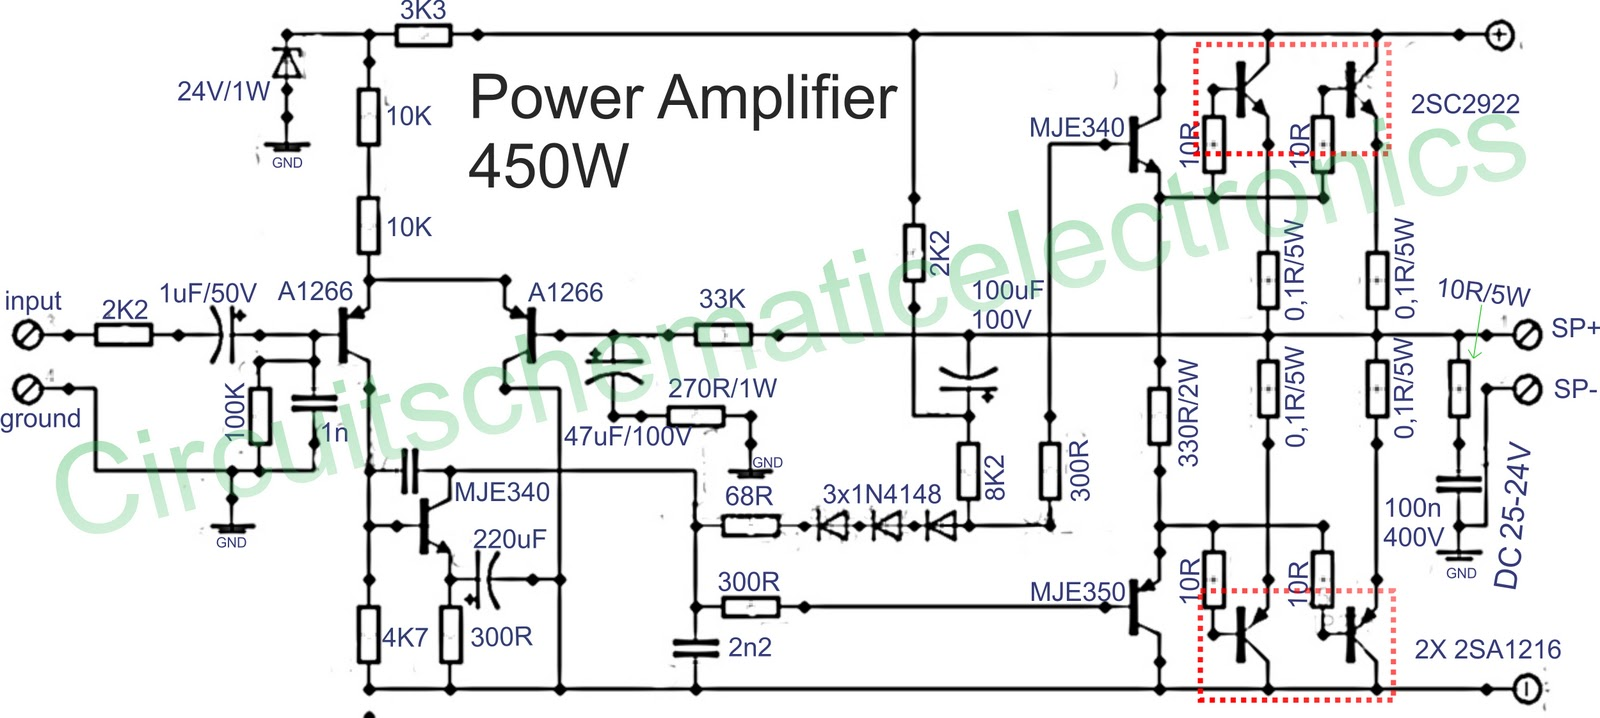 1000 watt amplifier circuit diagram [ 1600 x 718 Pixel ]